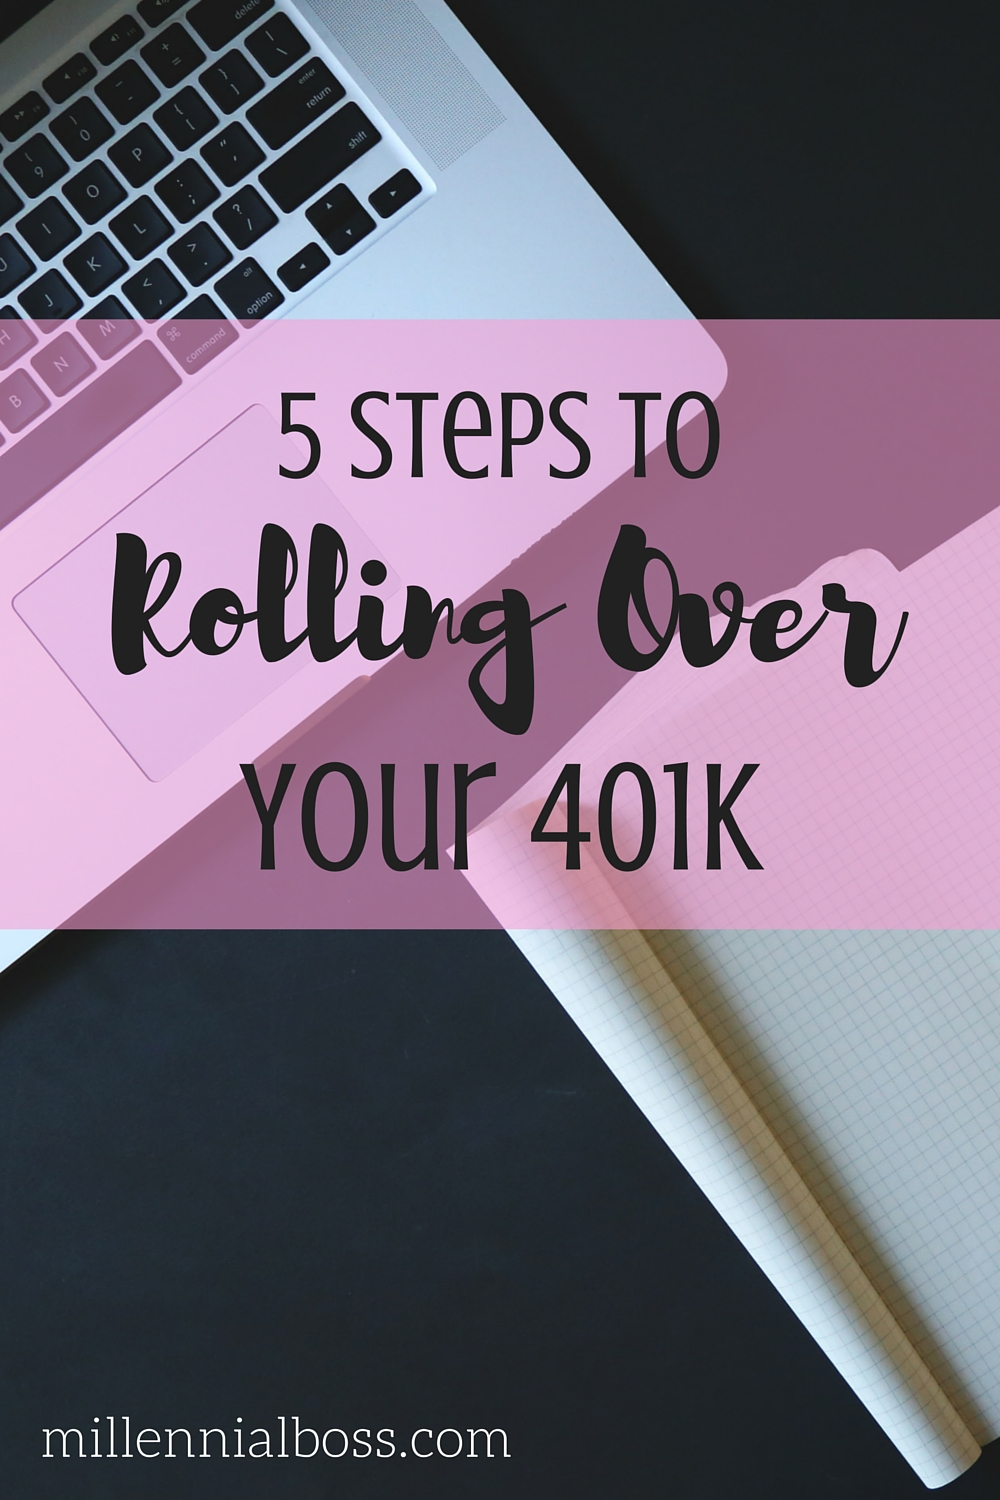 5 Steps to Rolling Over Your 401k - Super easy!!